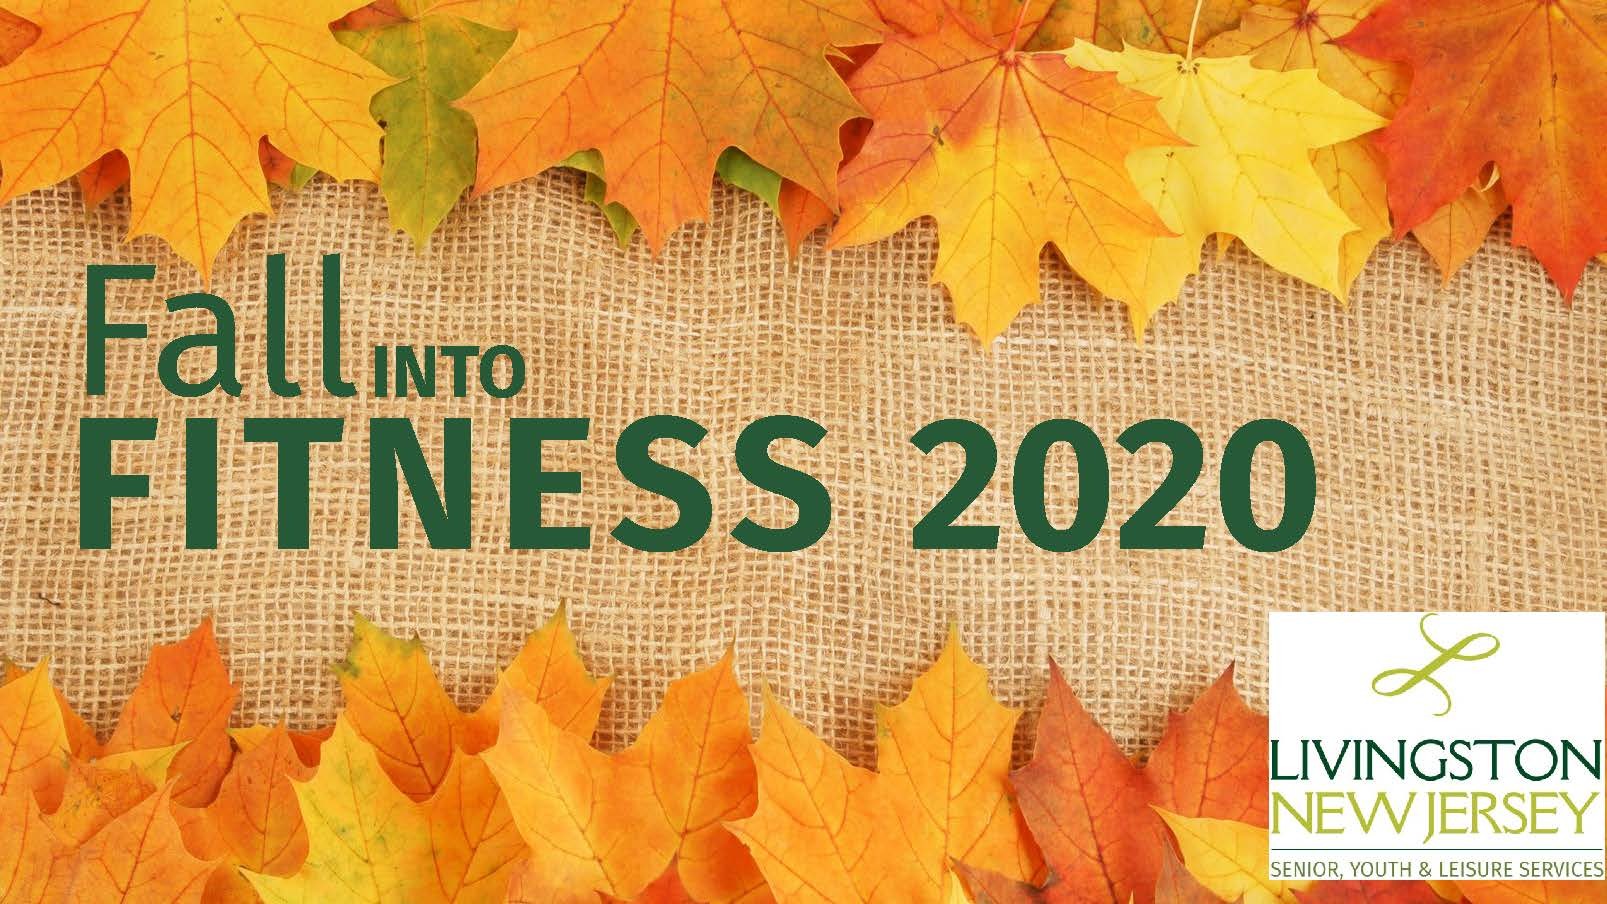 Fall Adult Fitness 2020 BANNER